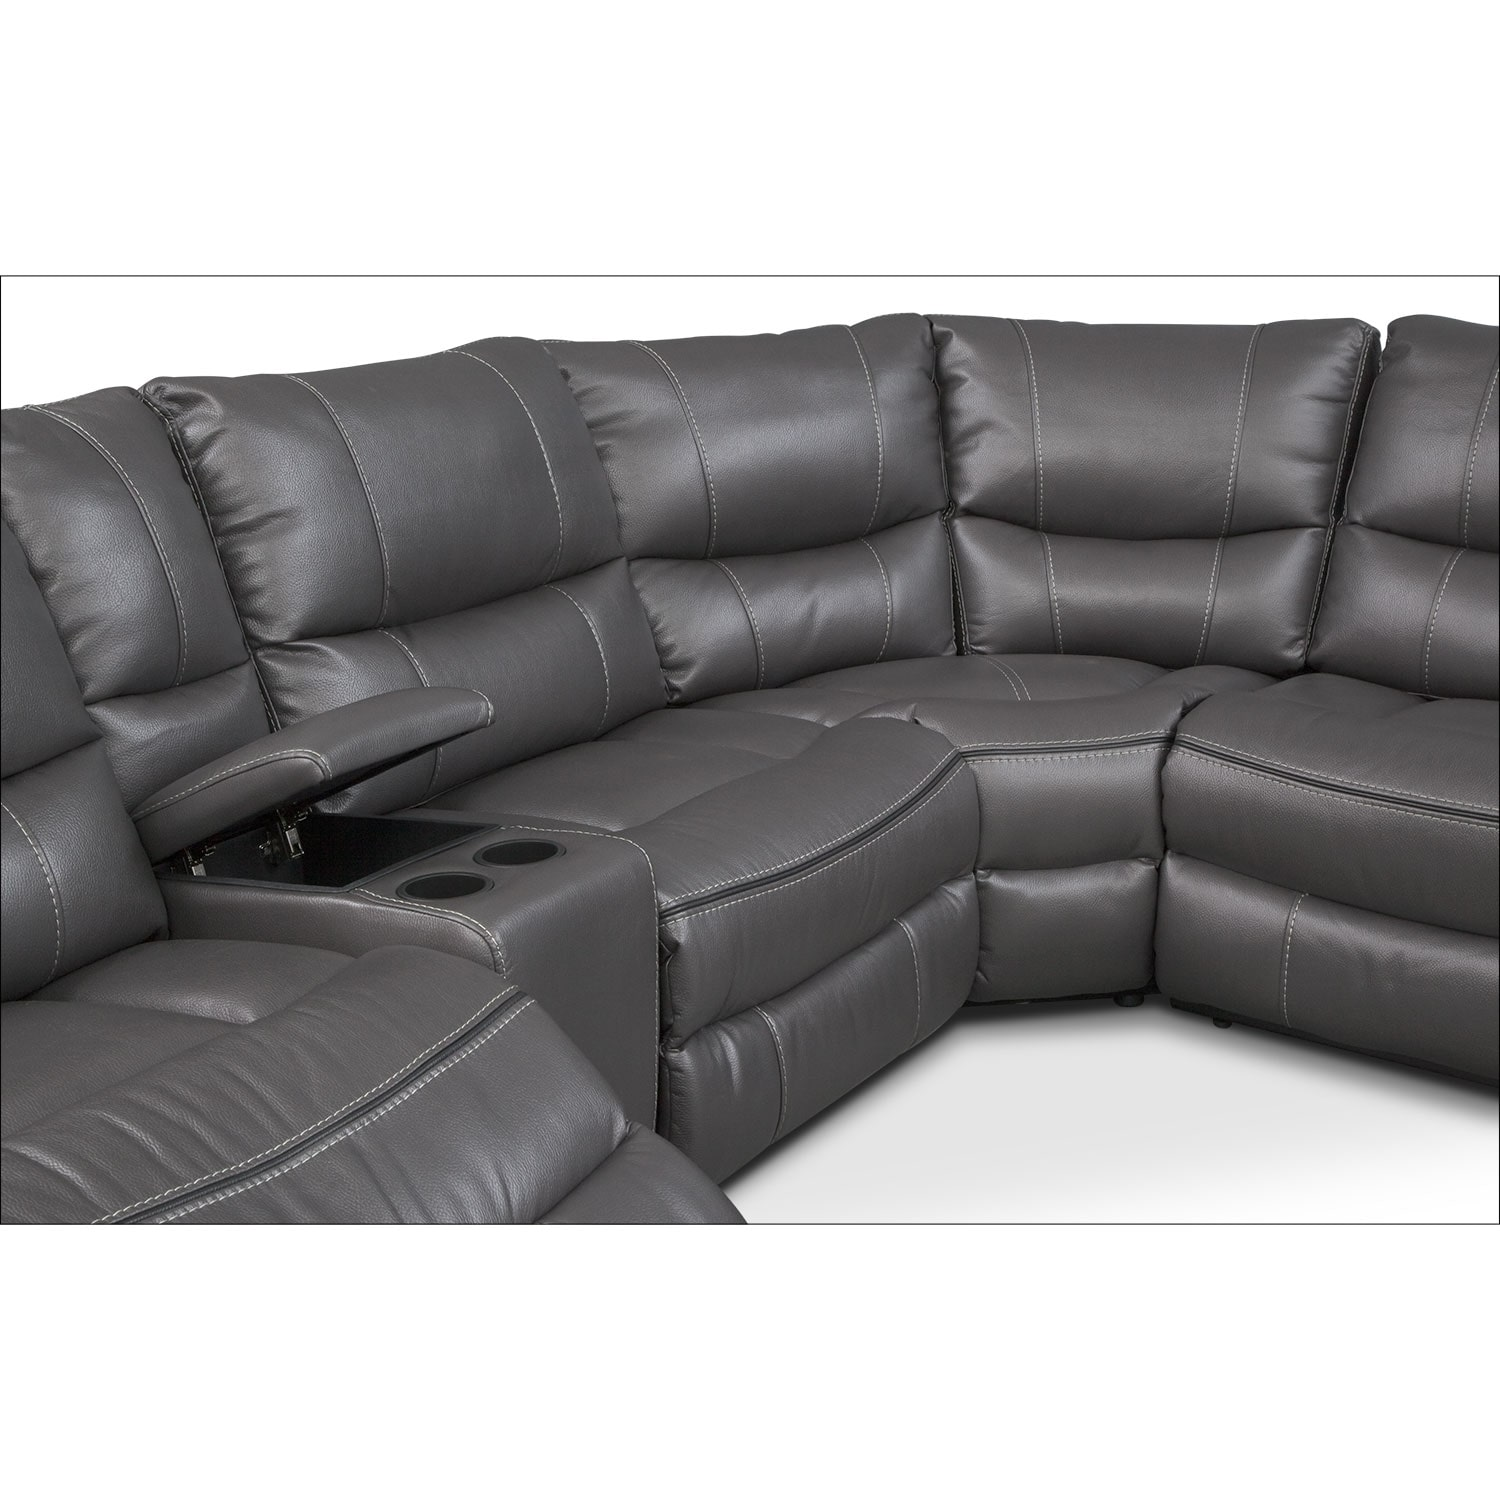 Living Room Furniture Orlando Orlando 6 Piece Power Reclining Sectional With 1 Stationary Chair